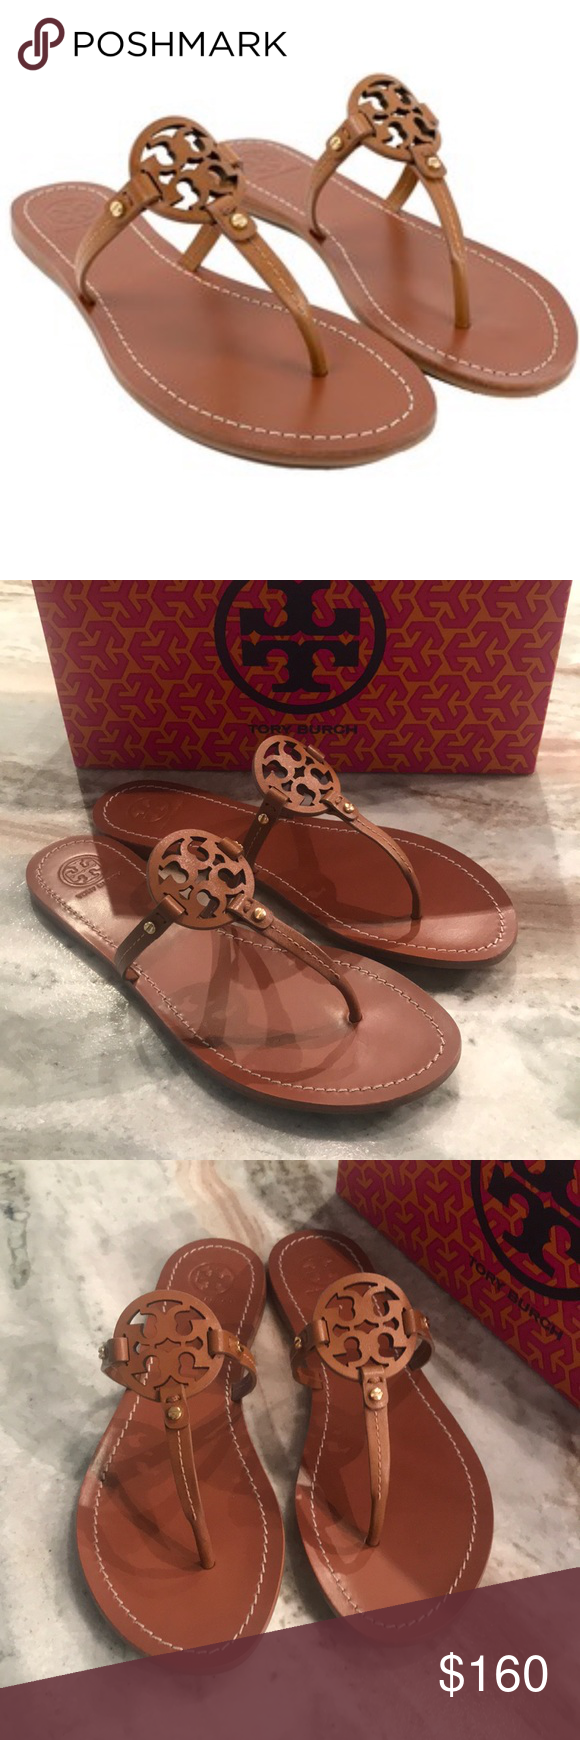 a199f10ba981 NIB TORY BURCH MINI MILLER SANDALS ROYAL TAN sz 9 AUTHENTIC AND BRAND NEW IN  BOX